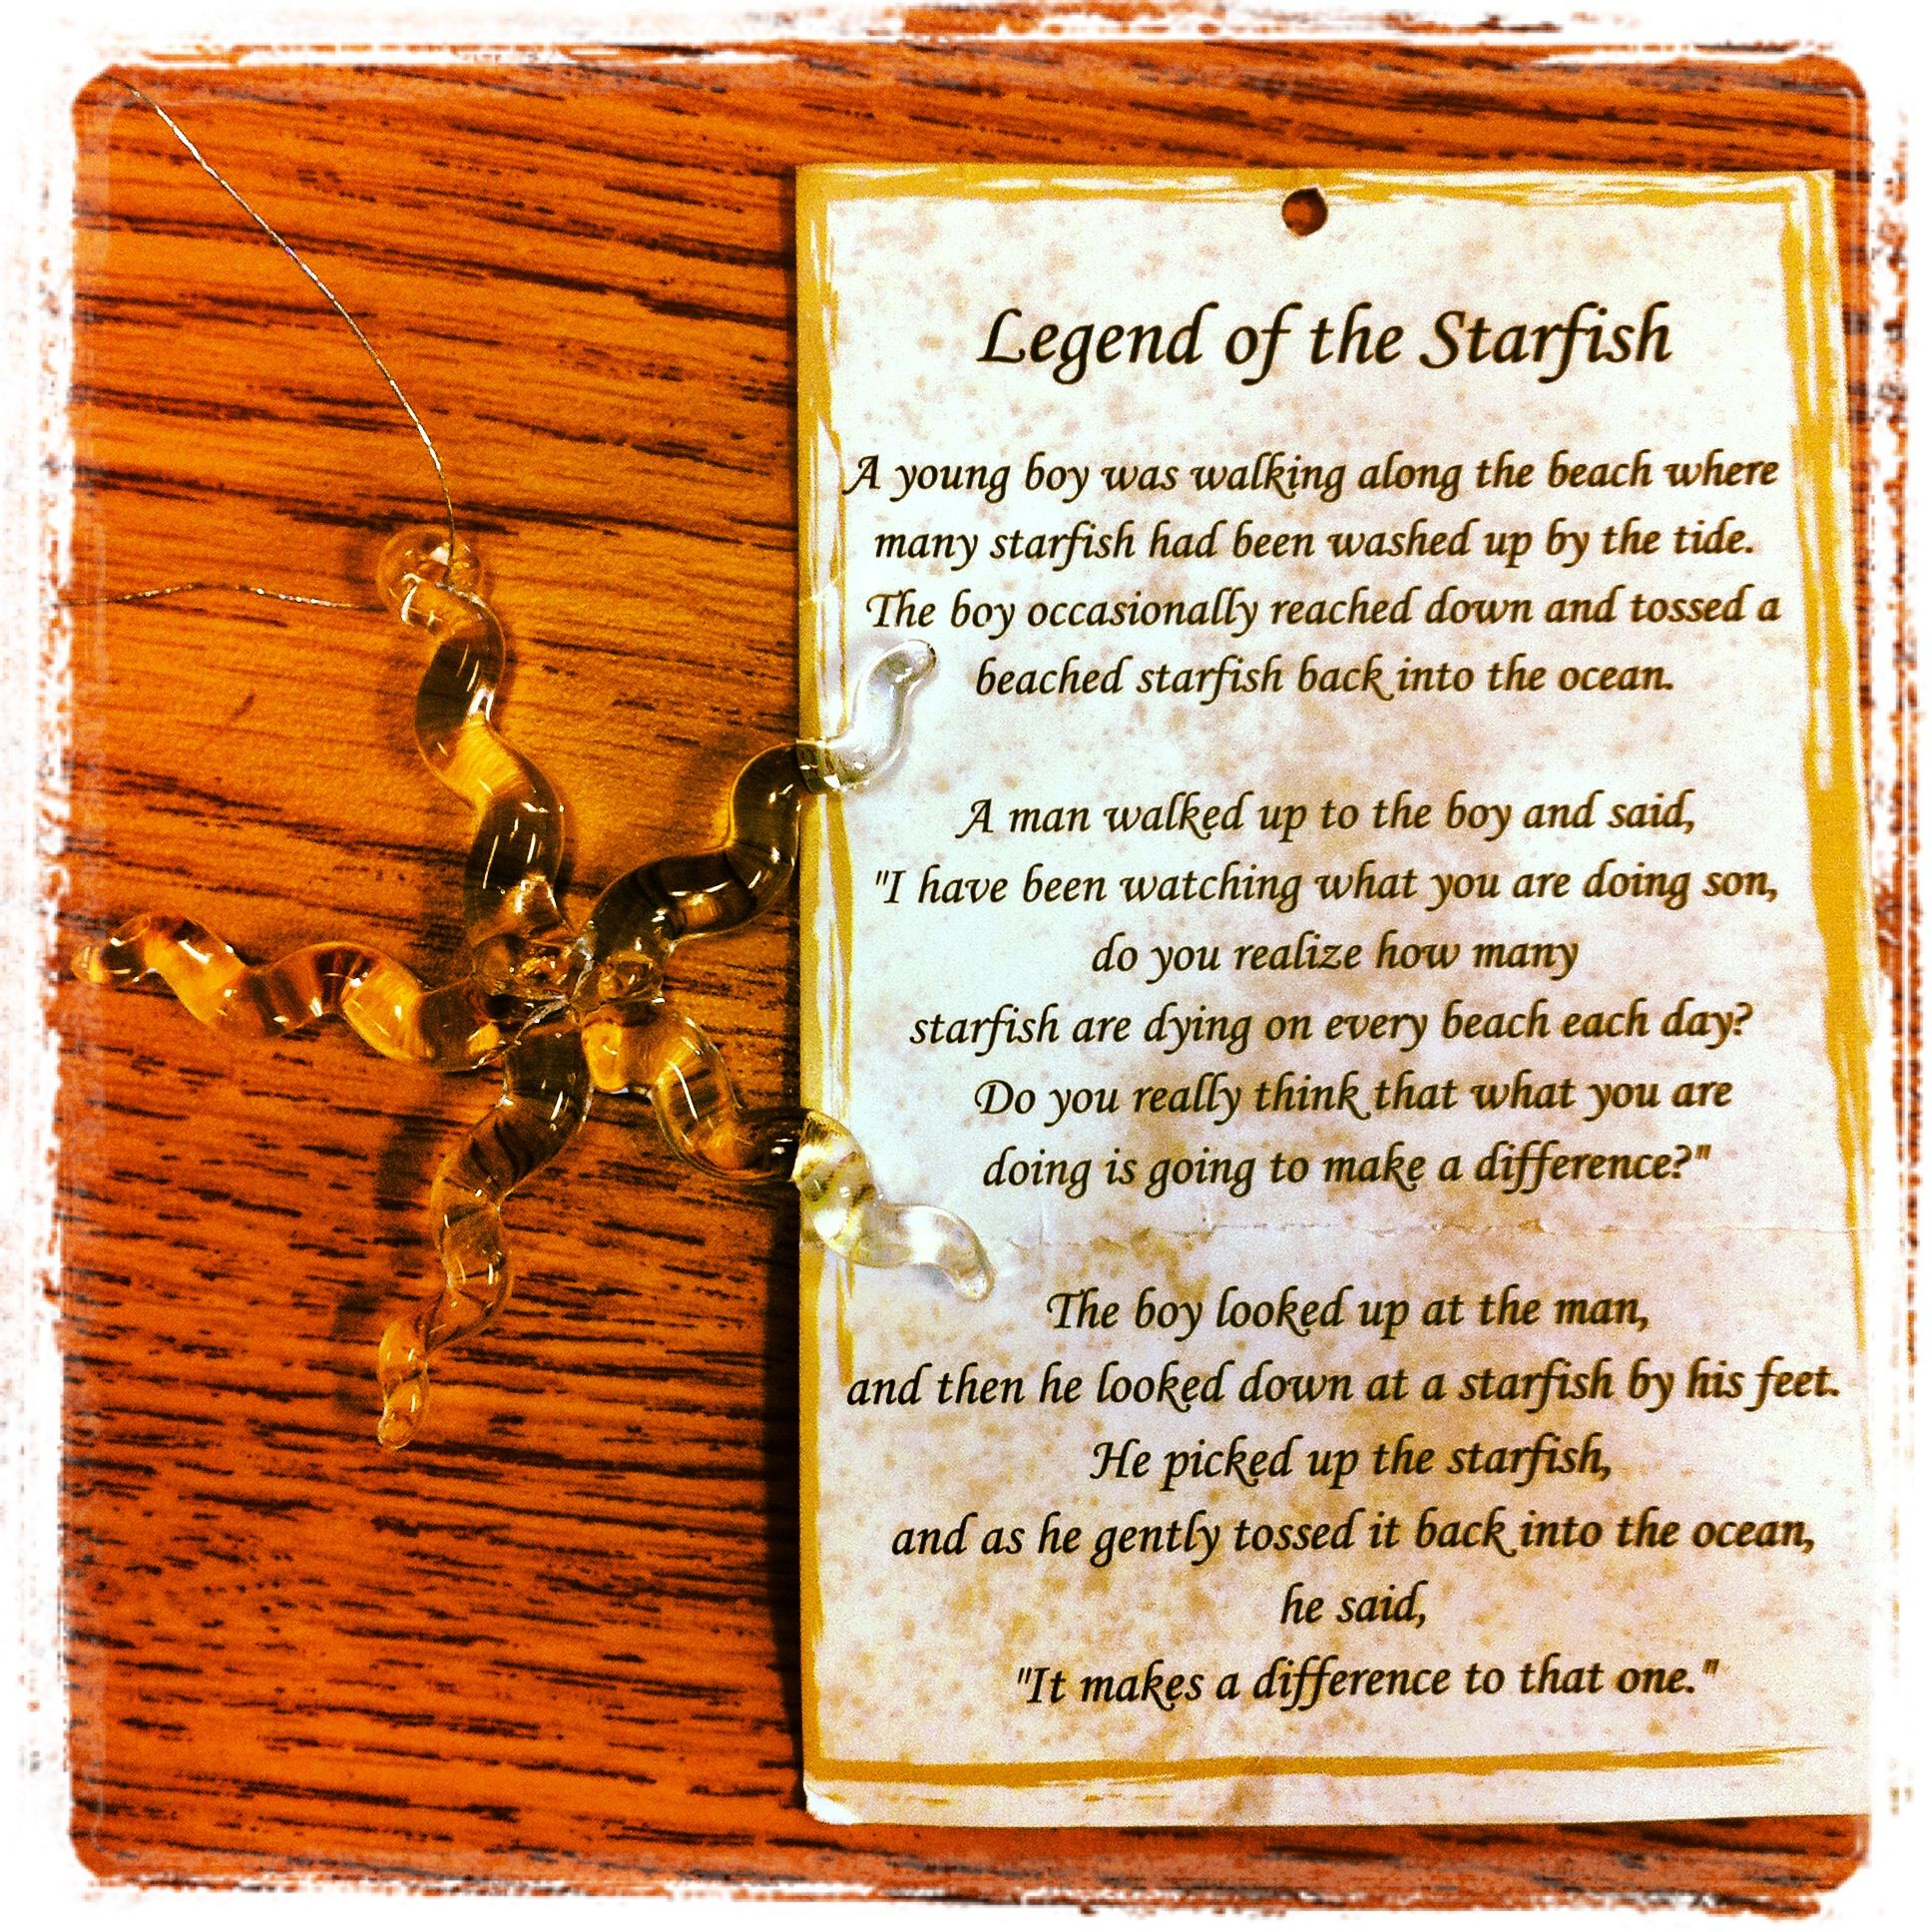 Starfish poem card - The Legend Of The Starfish